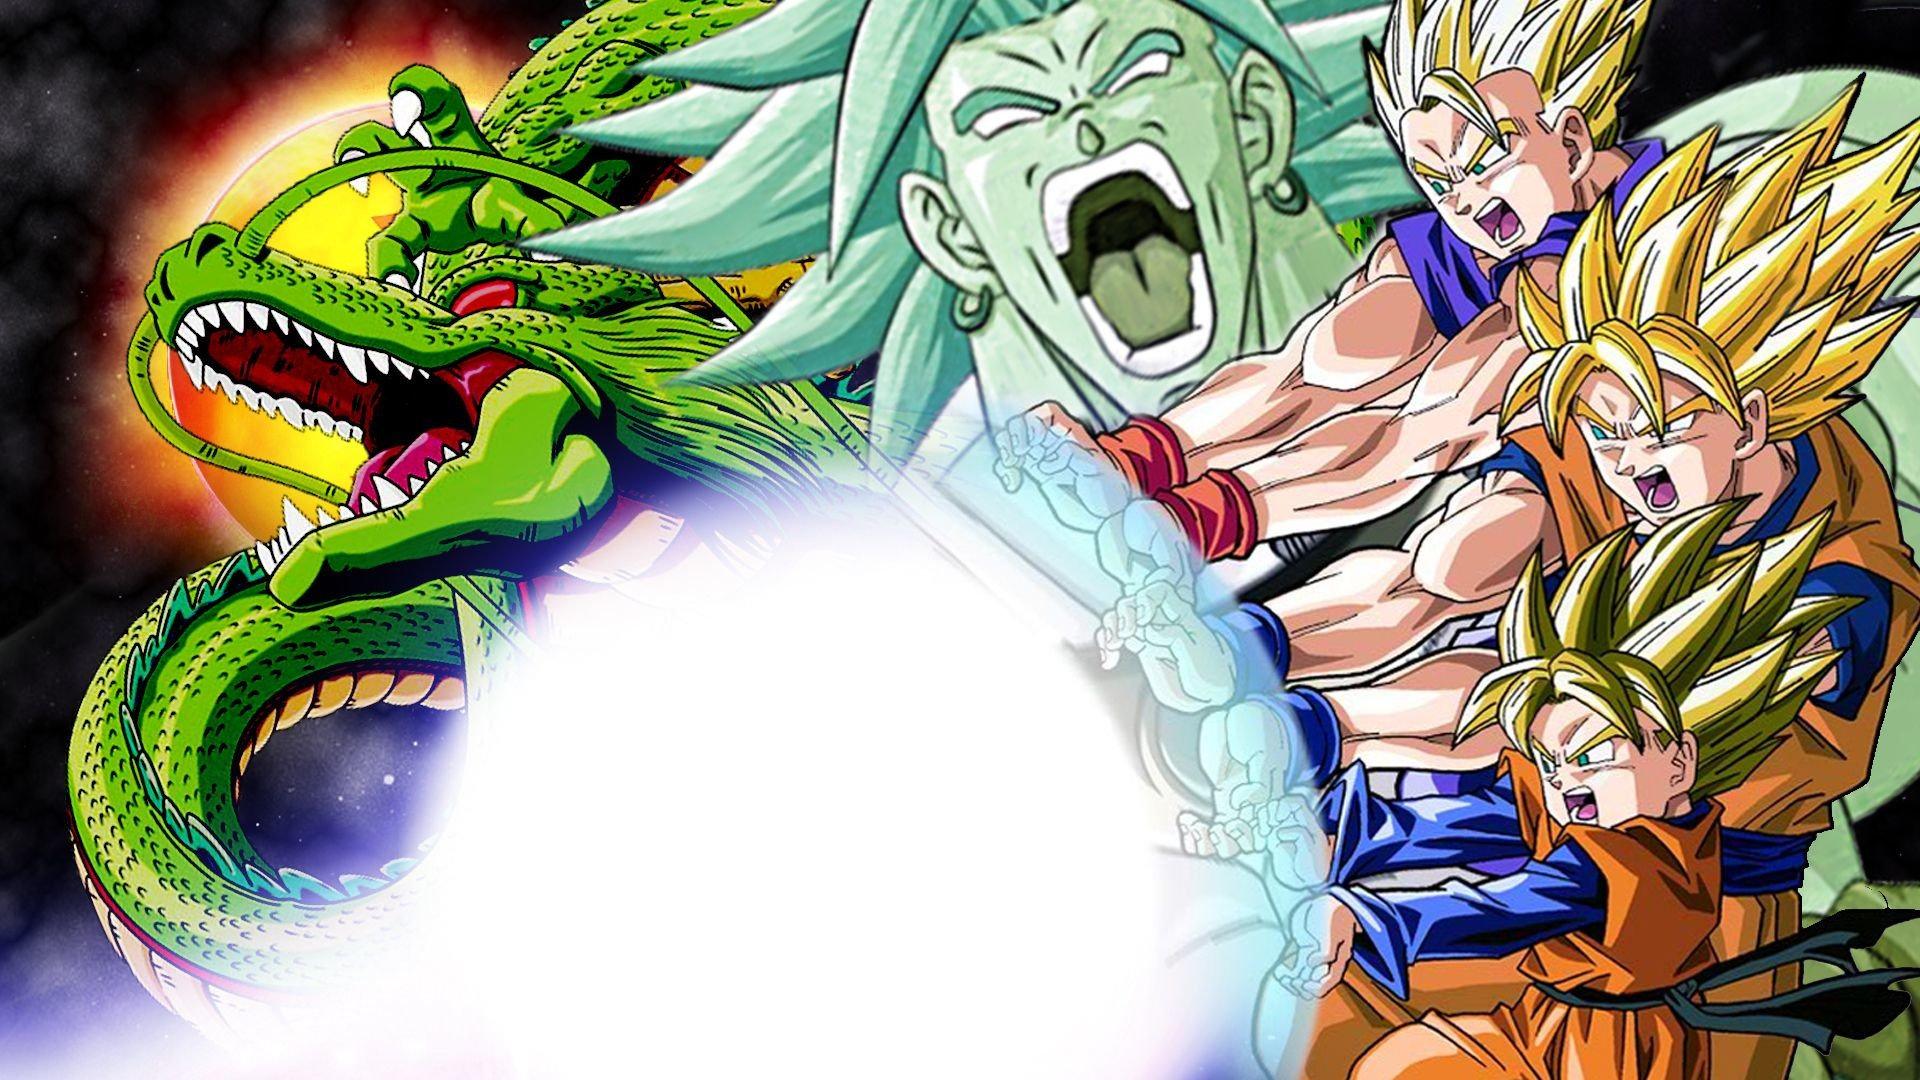 Free Download 56 Dbz Broly Wallpapers On Wallpaperplay